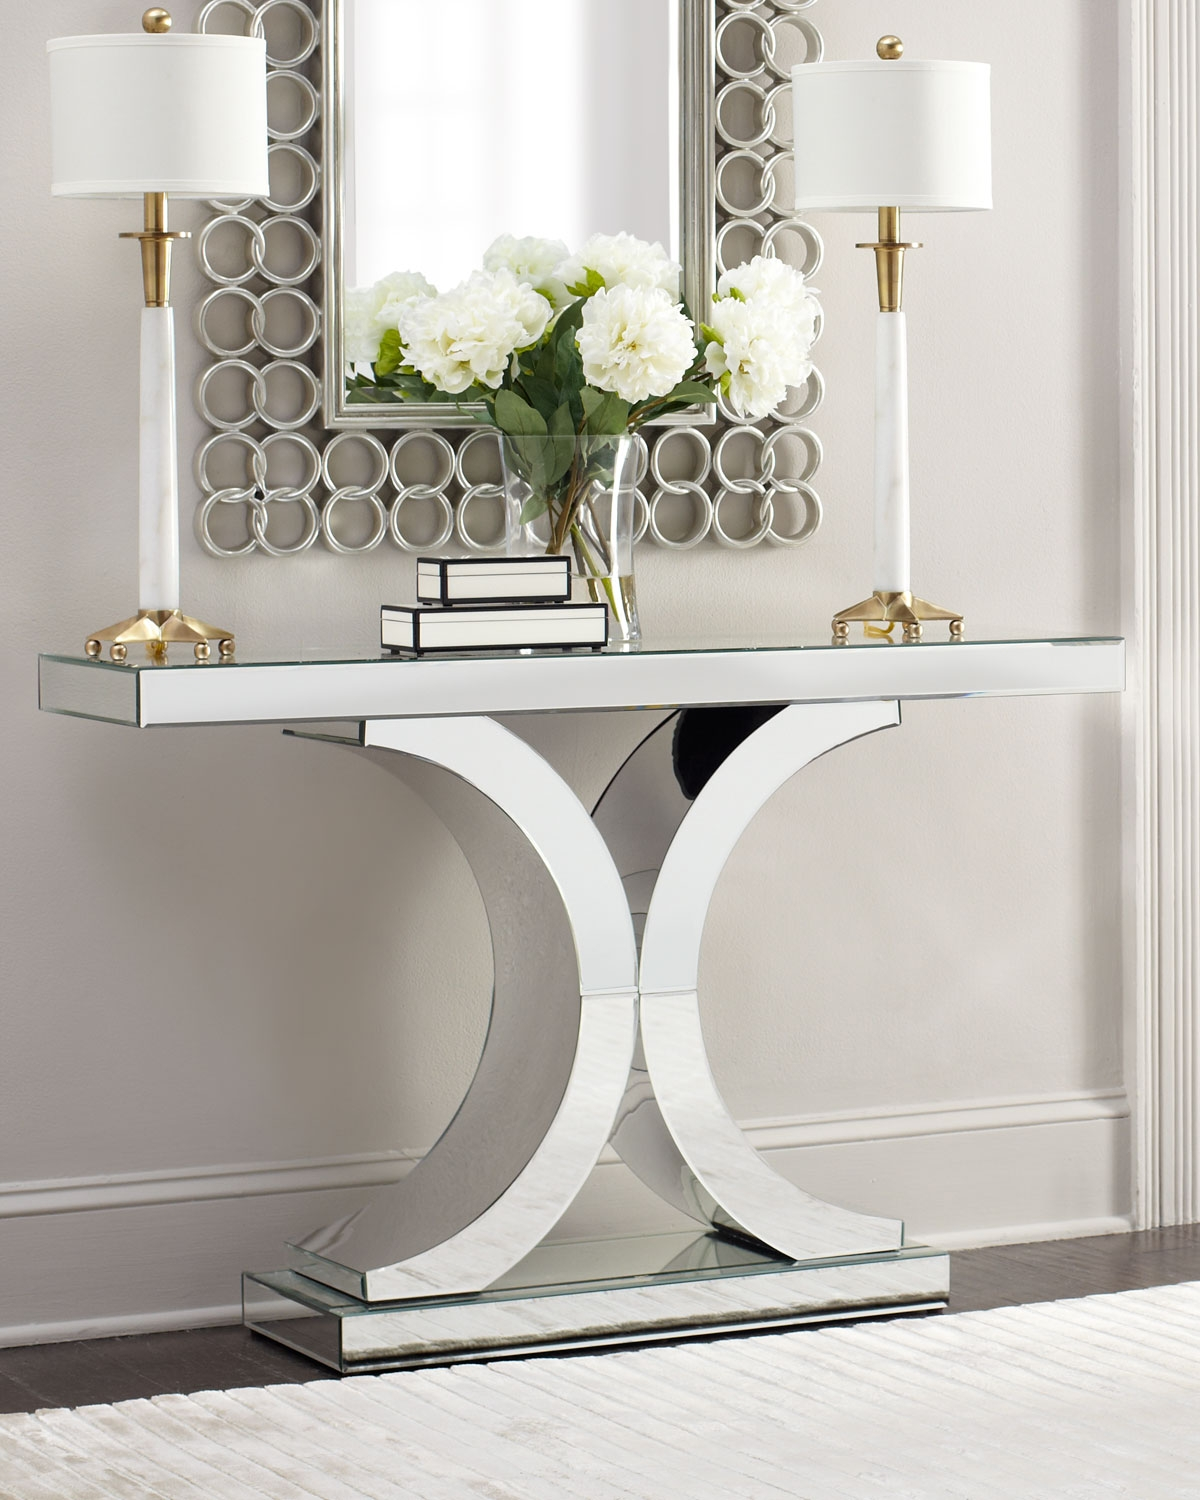 Splendora Mirrored Console Entrance Pinterest Adana Design In Mirrored Occasional Tables (View 8 of 15)